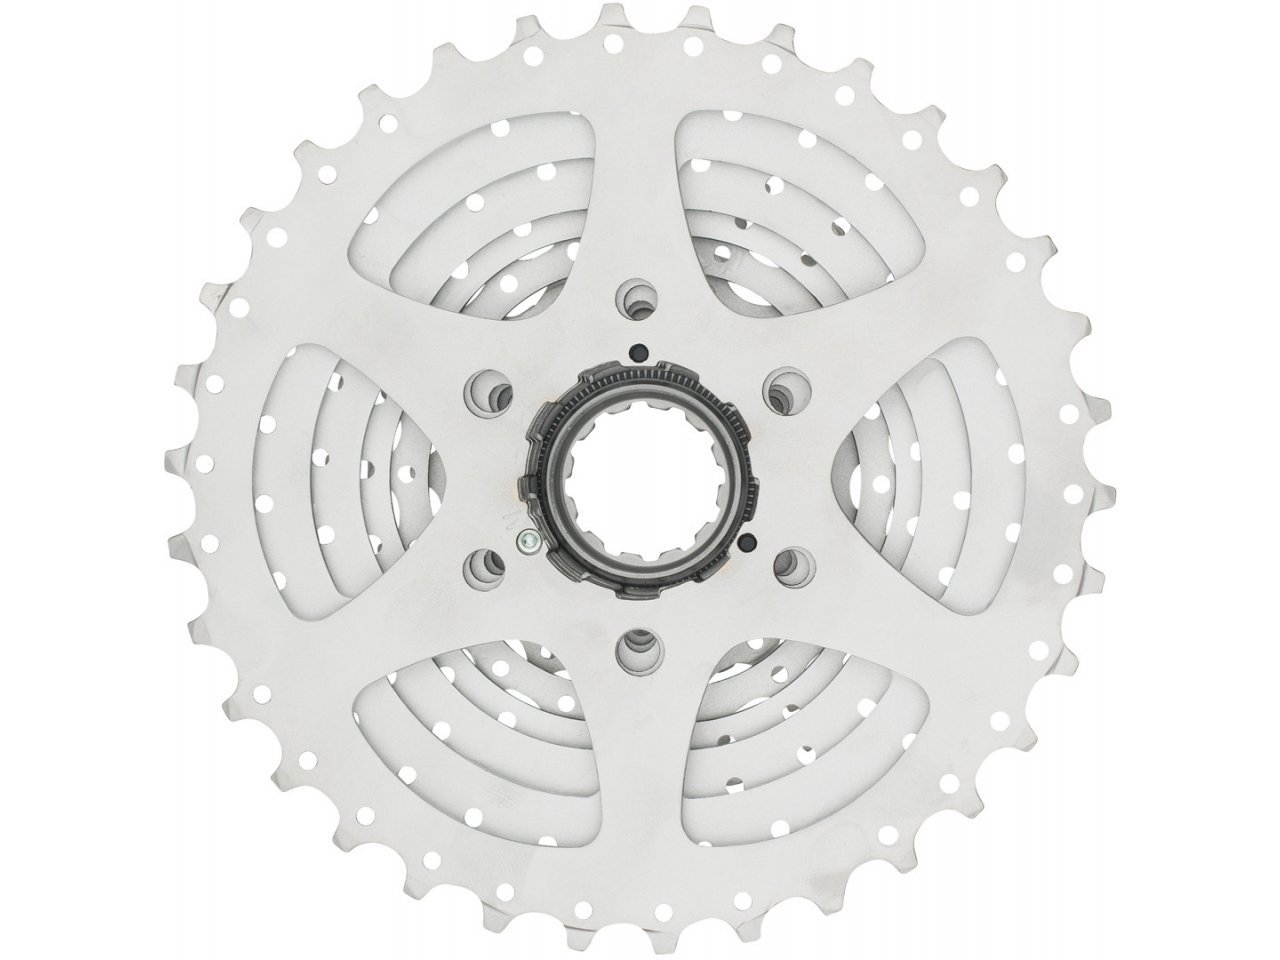 SRAM PG-970 12-23T Road Bike 9-Speed Cassette